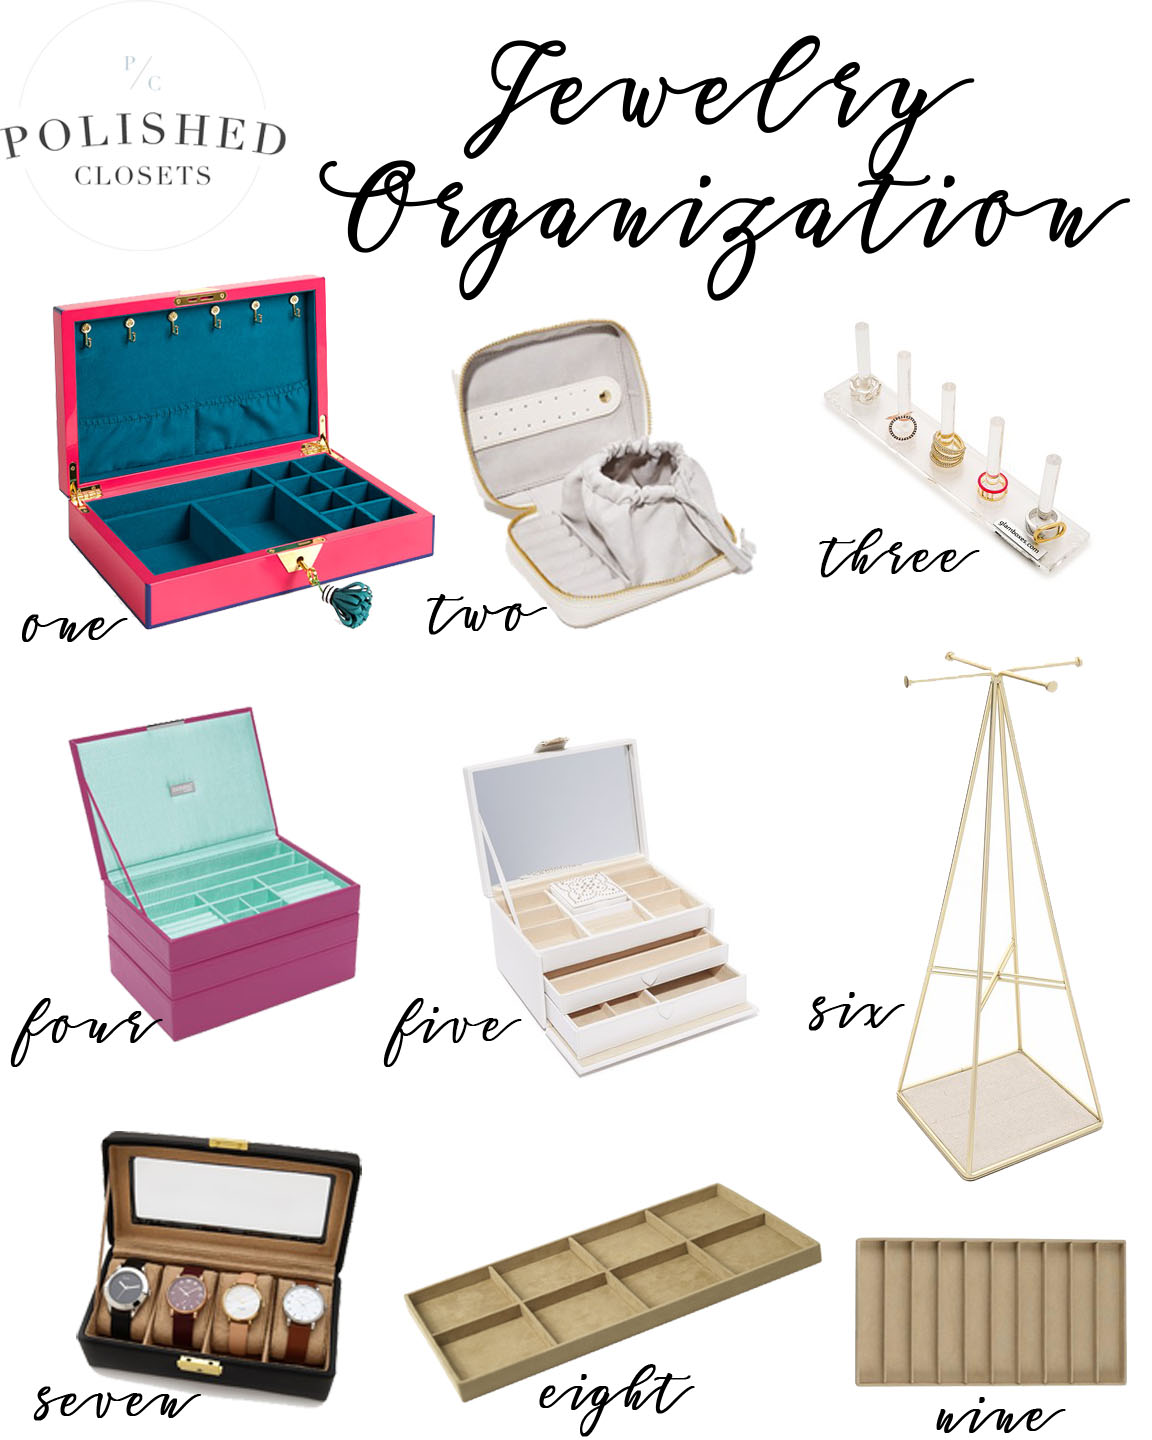 Jewelry Organizer Ideas Organization Solutions Polished Closets